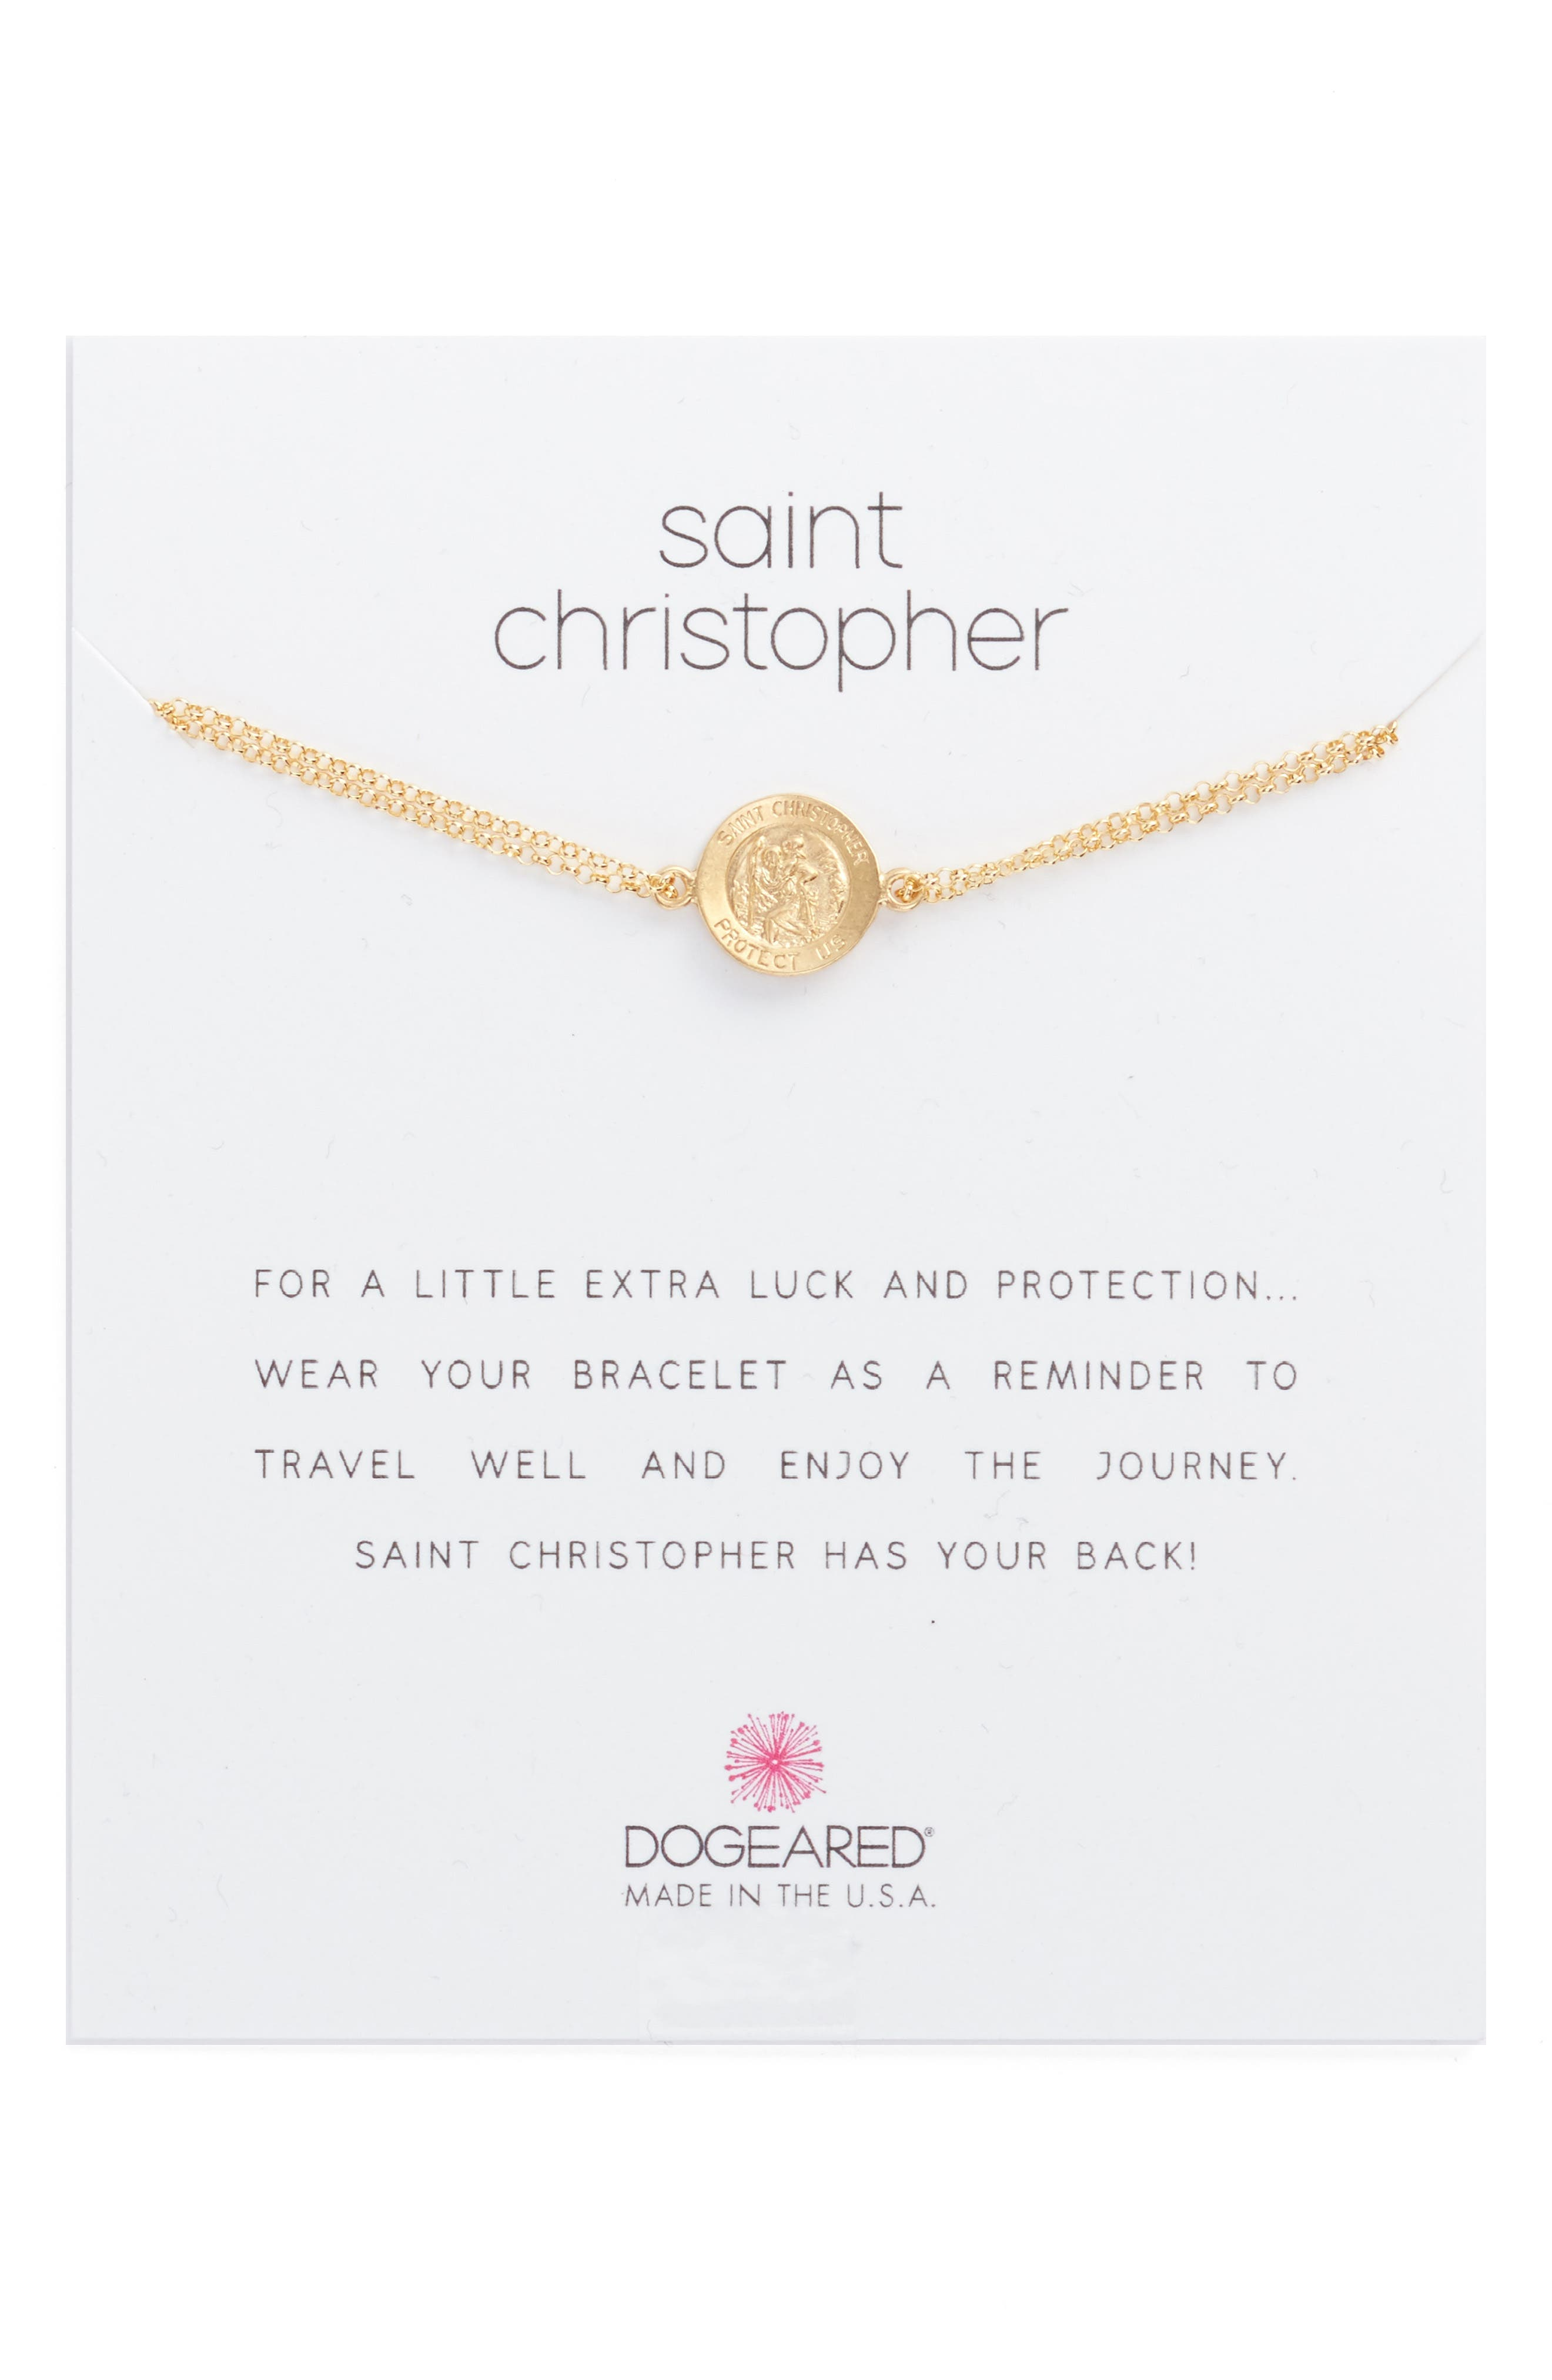 Alternate Image 1 Selected - Dogeared Saint Christopher Pull Bracelet